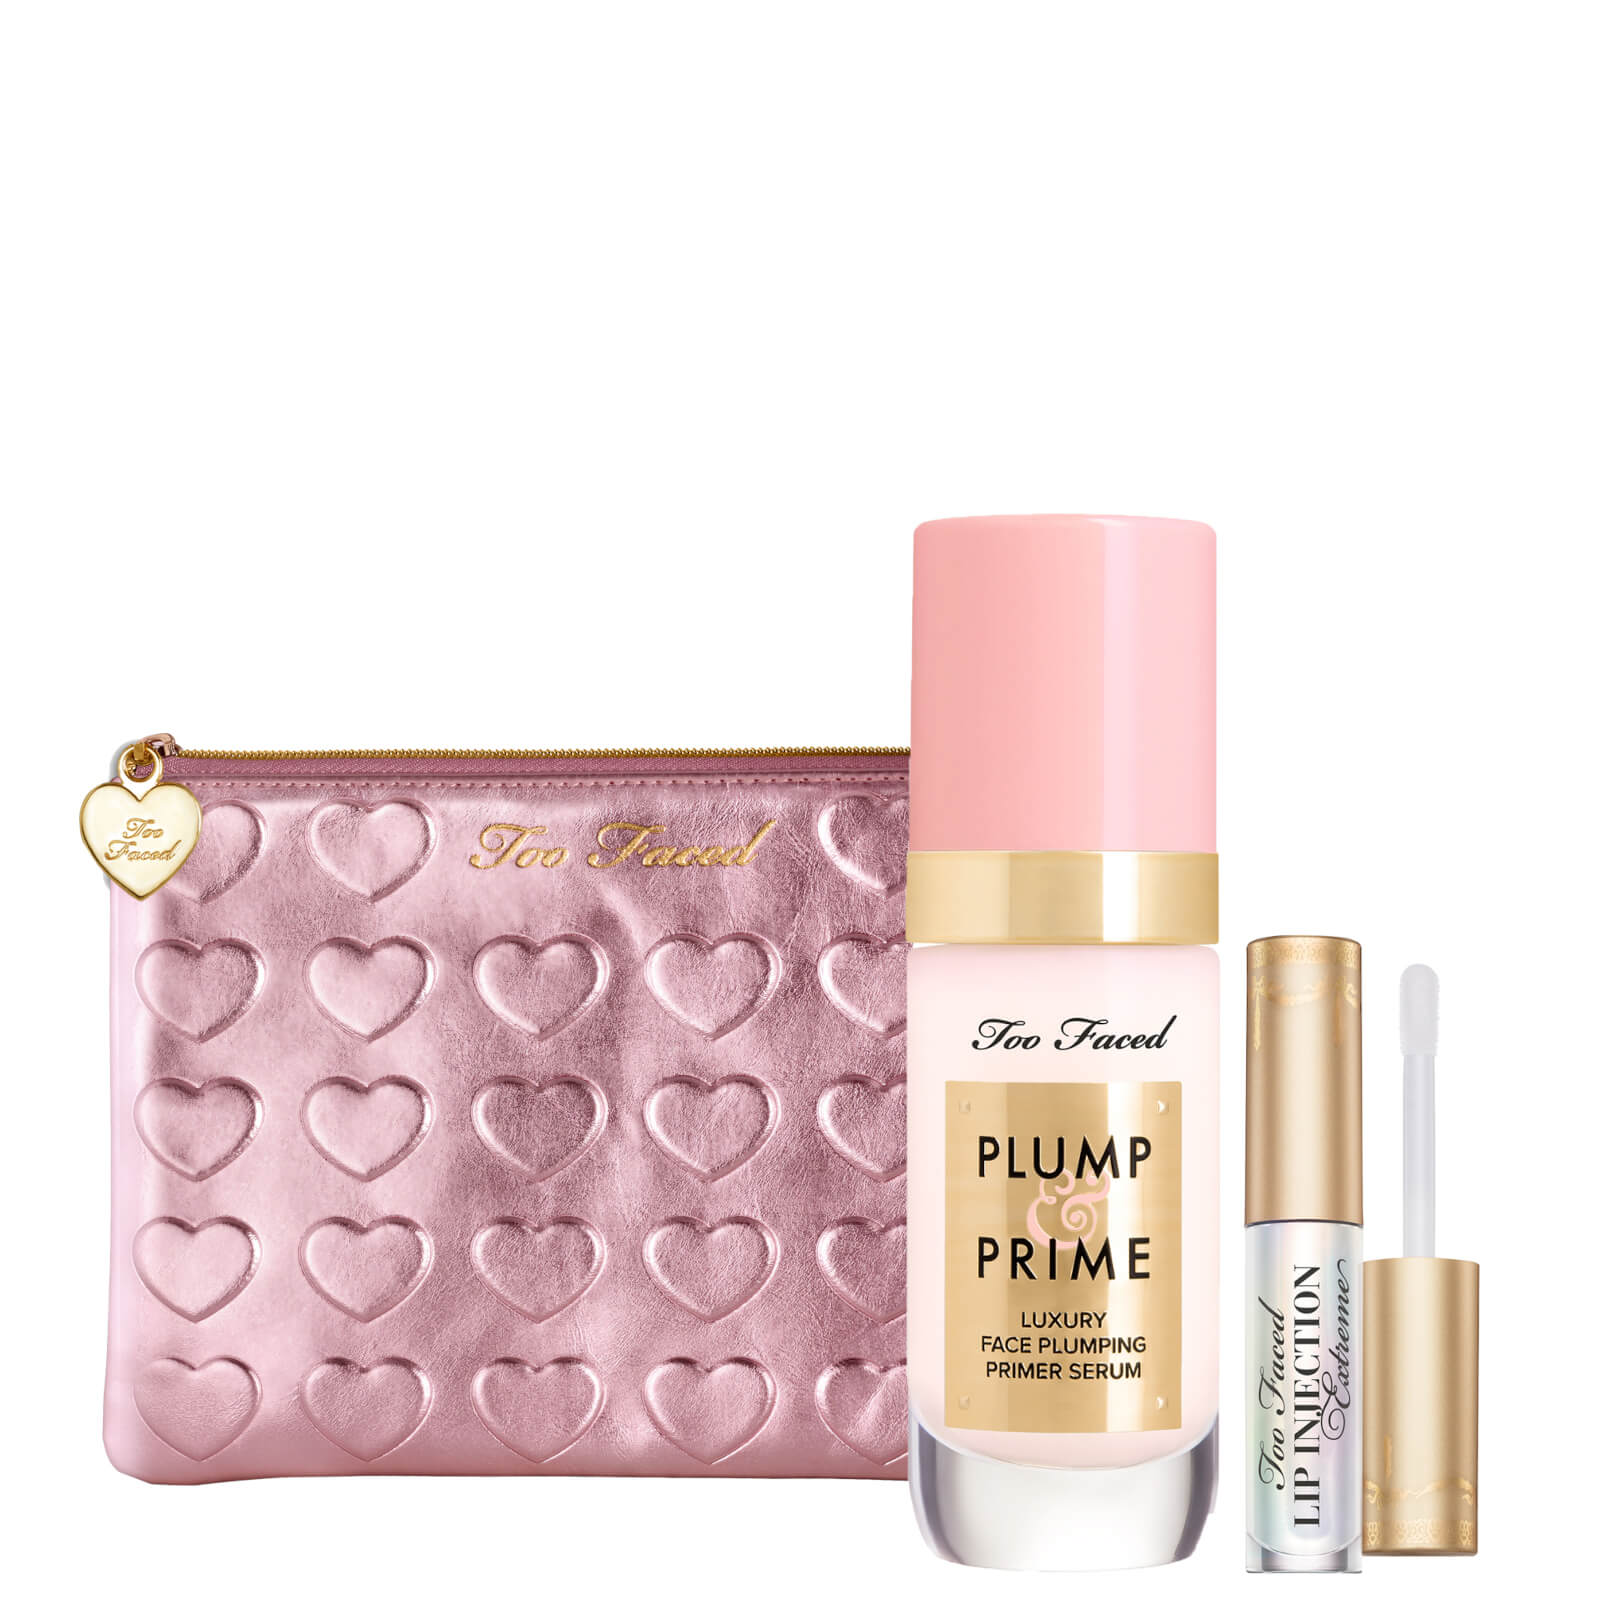 Too Faced Plump and Prime Bundle